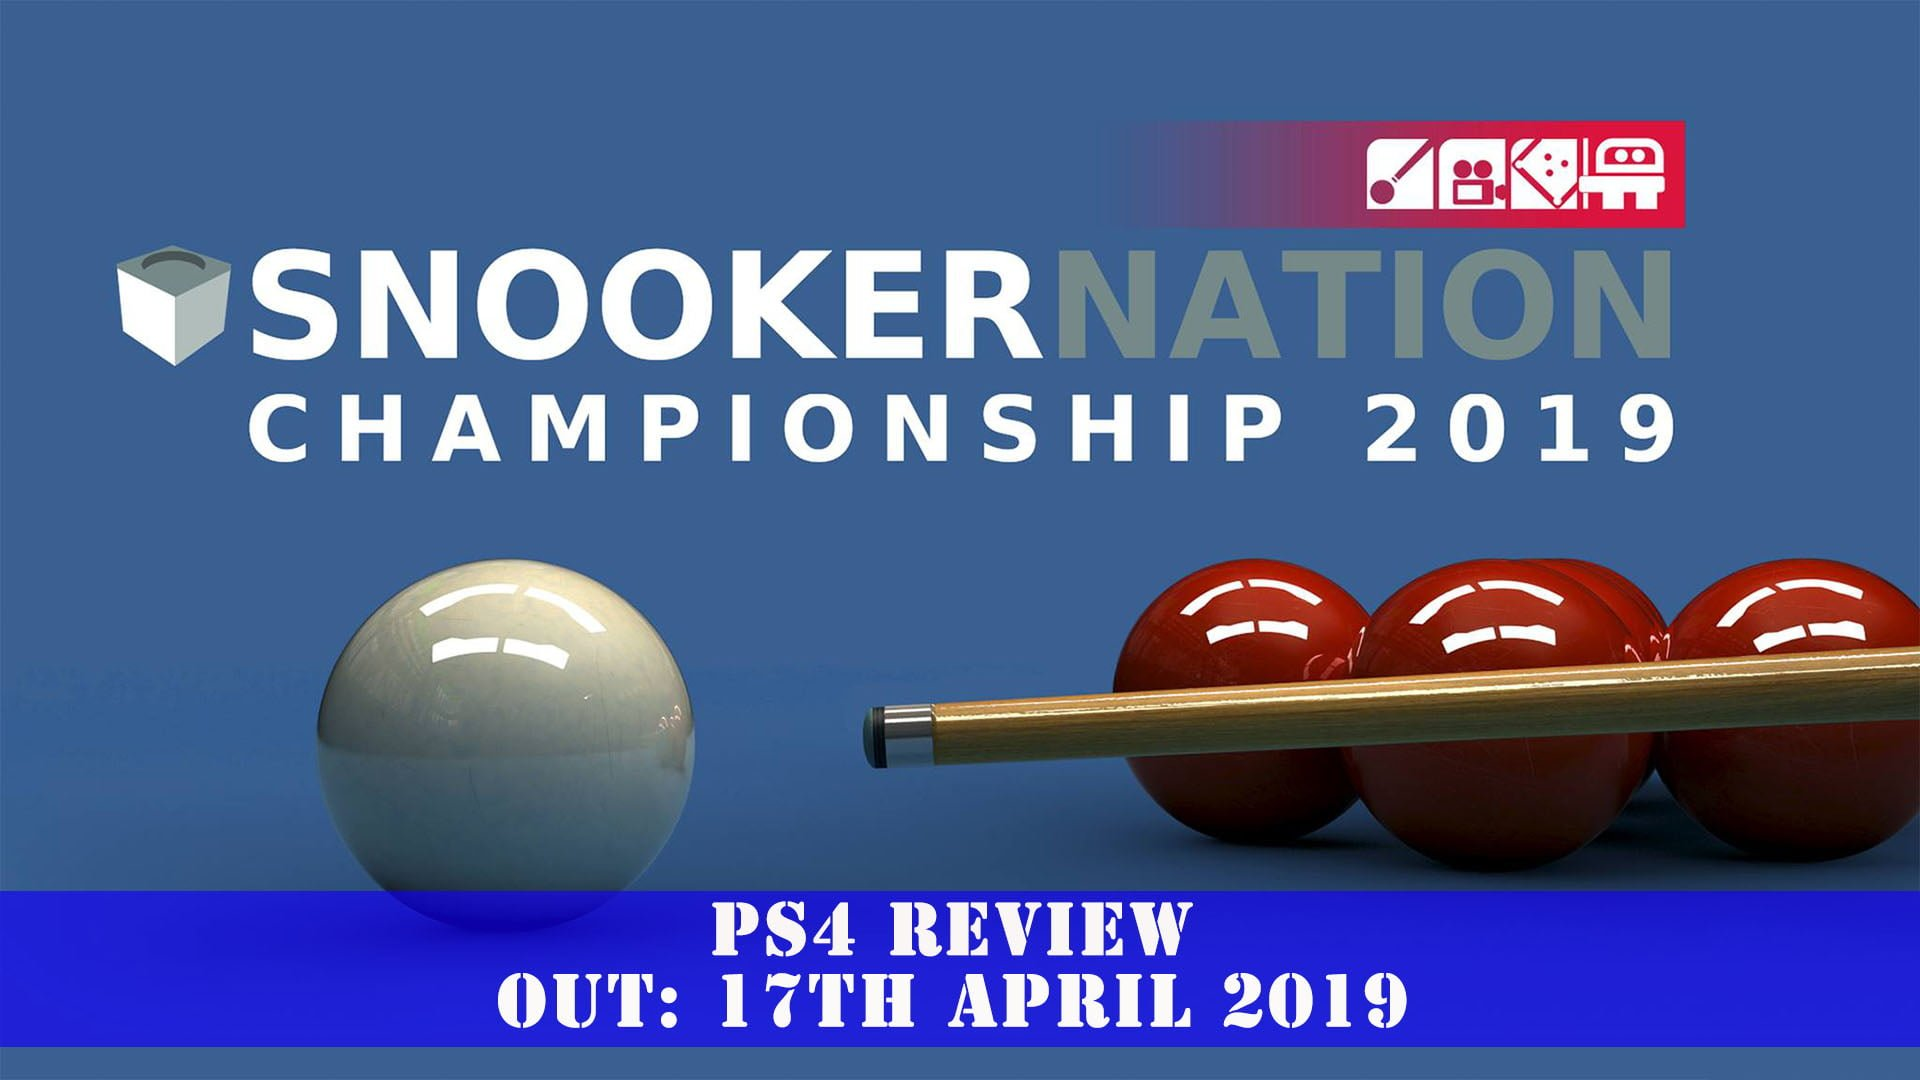 Snooker Nation Championship 2019 (PS4) Review